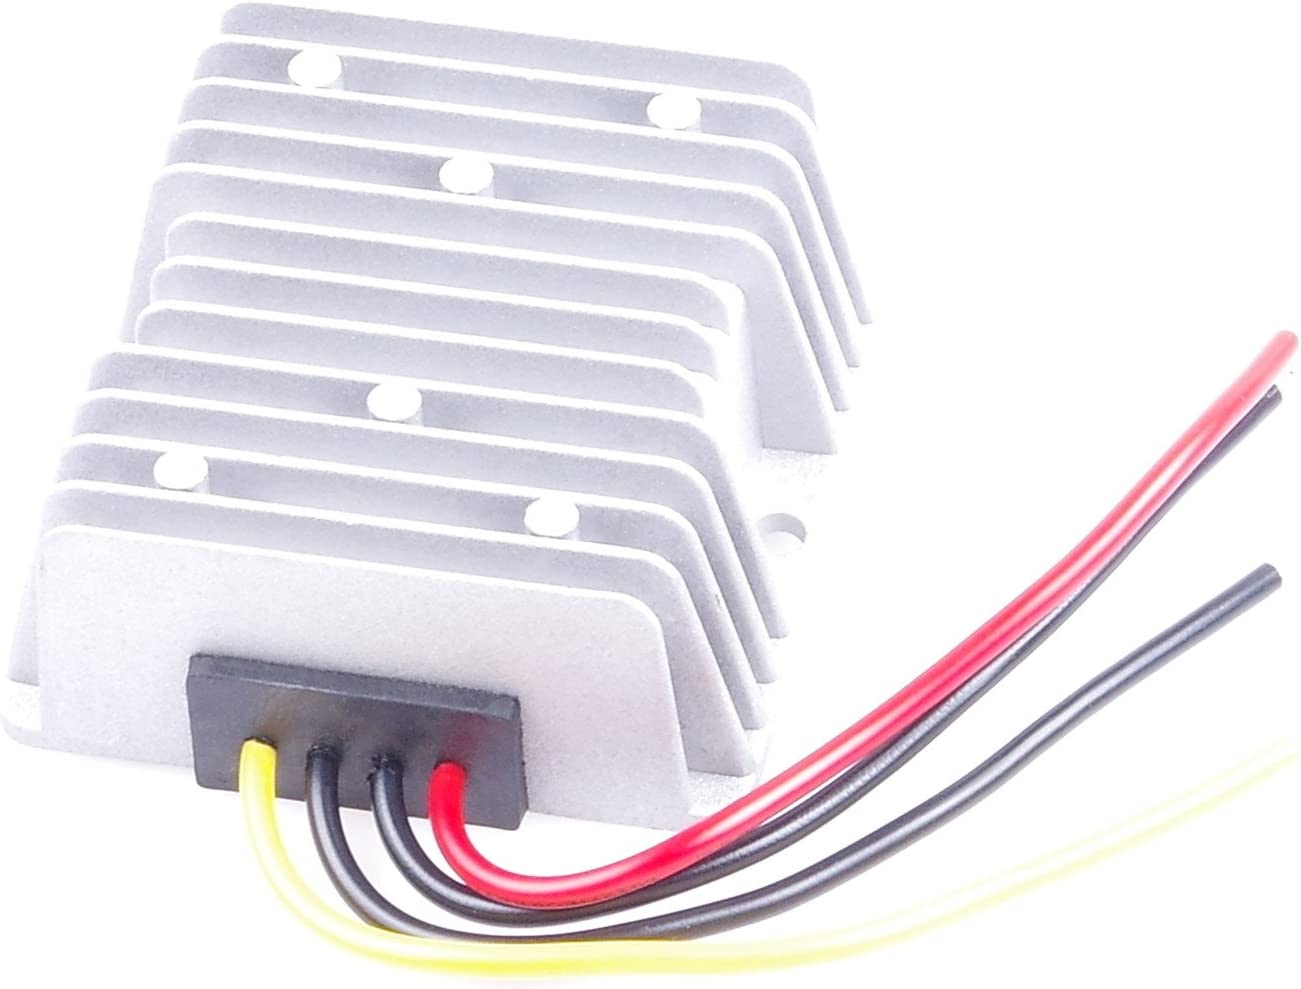 KNACRO DC-DC 12V 24V (9-40V) Step Down to 6V 25A 150W Buck Power Converter Step Down Power Supply Waterproof Overcurrent, overtemperature, Short Circuit Protection(6V 25A)